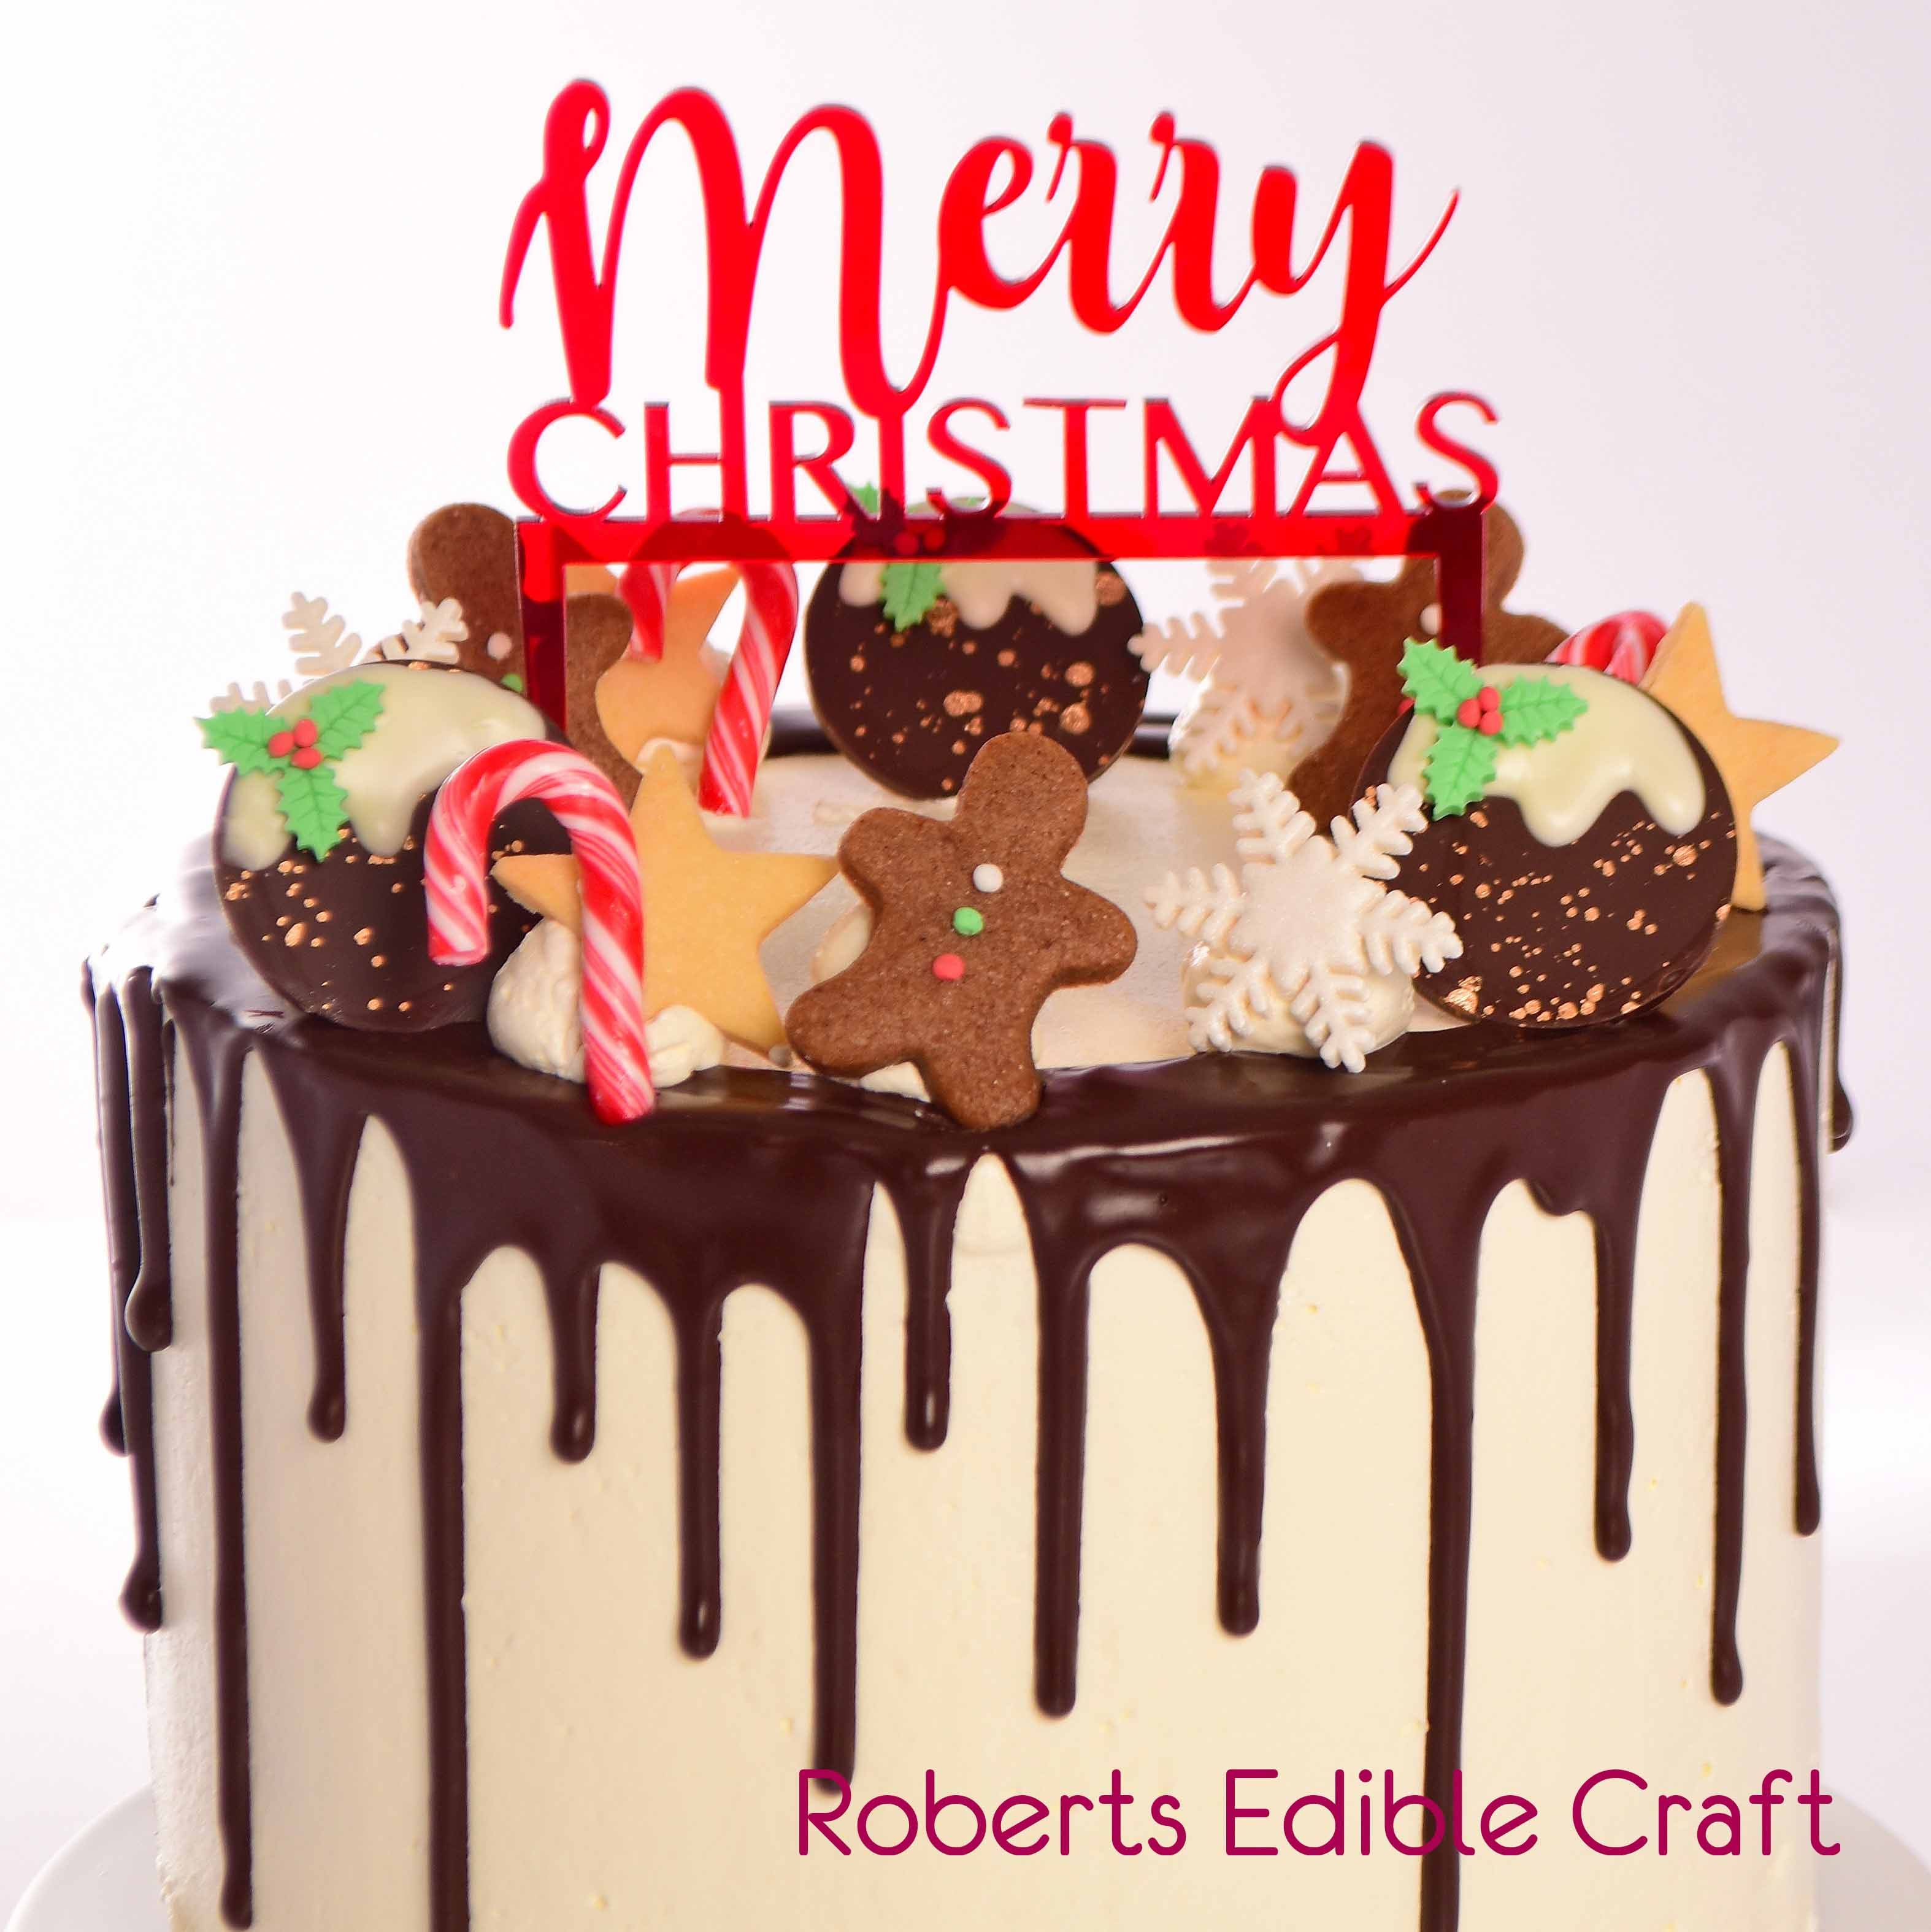 merry-christmas-choc-cake-080-icon.jpg